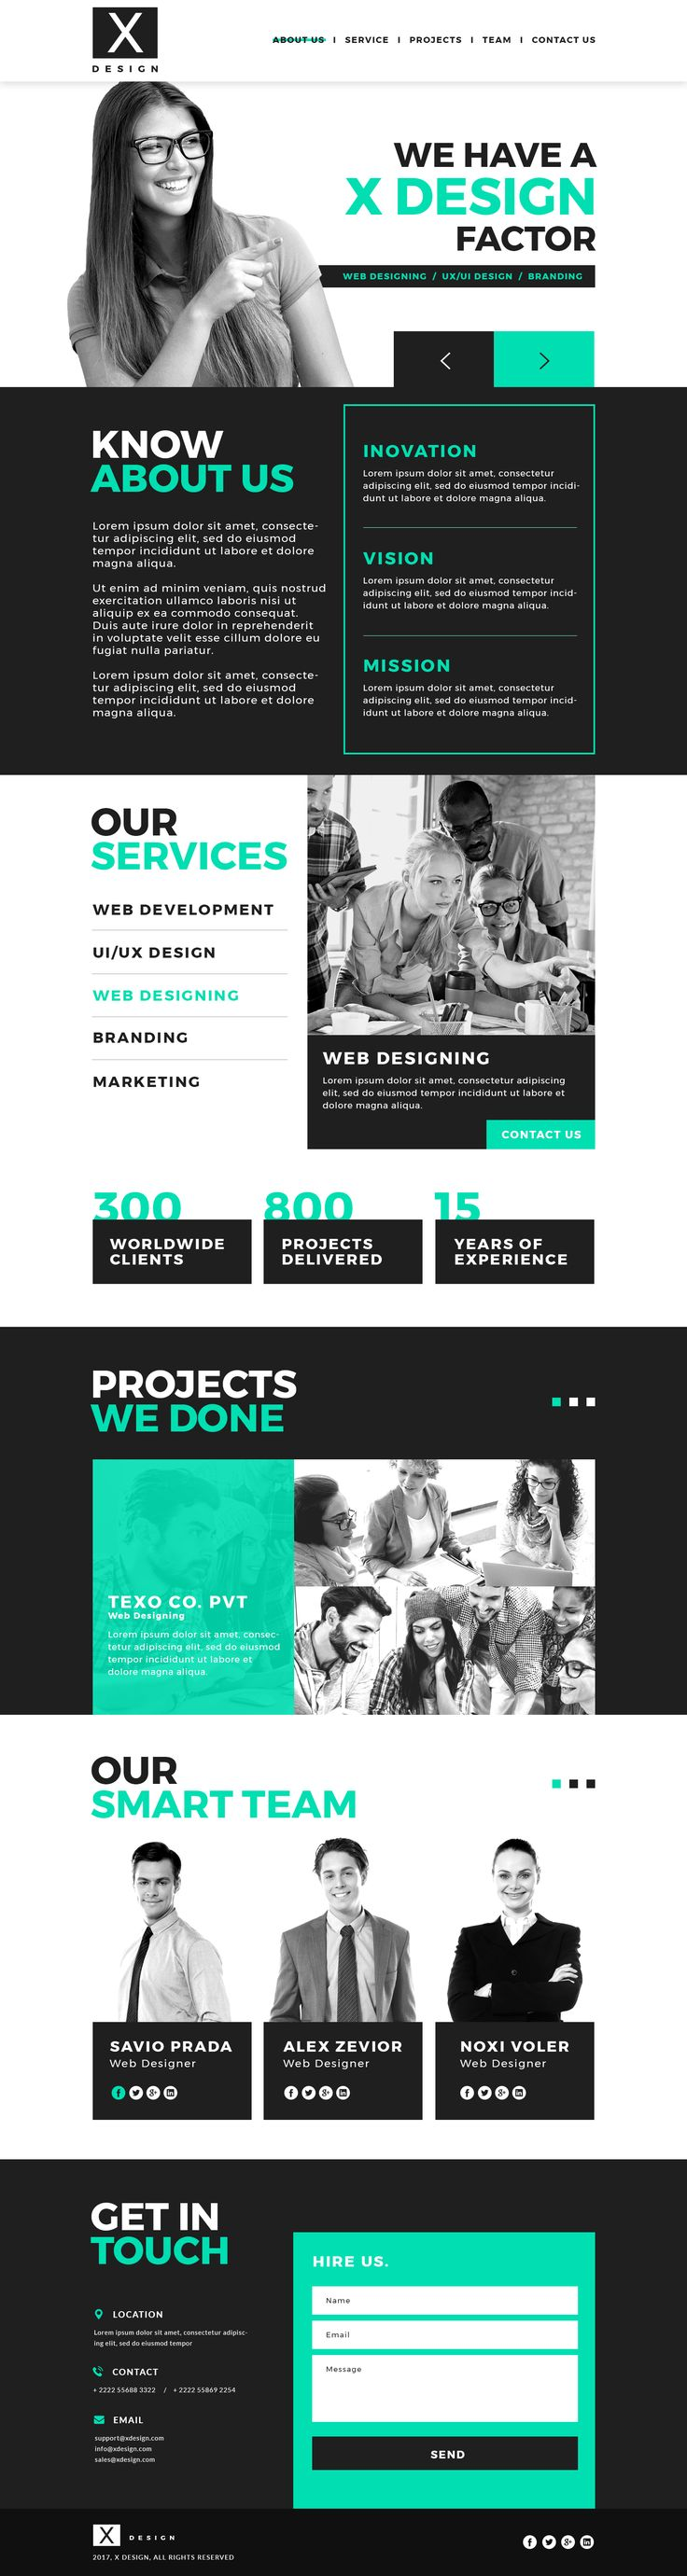 X design is a well designed PSD web template with modern and fresh look.This template can be used to design portfolio, websites, This is unique,creative and best solution for your project. PSD file...